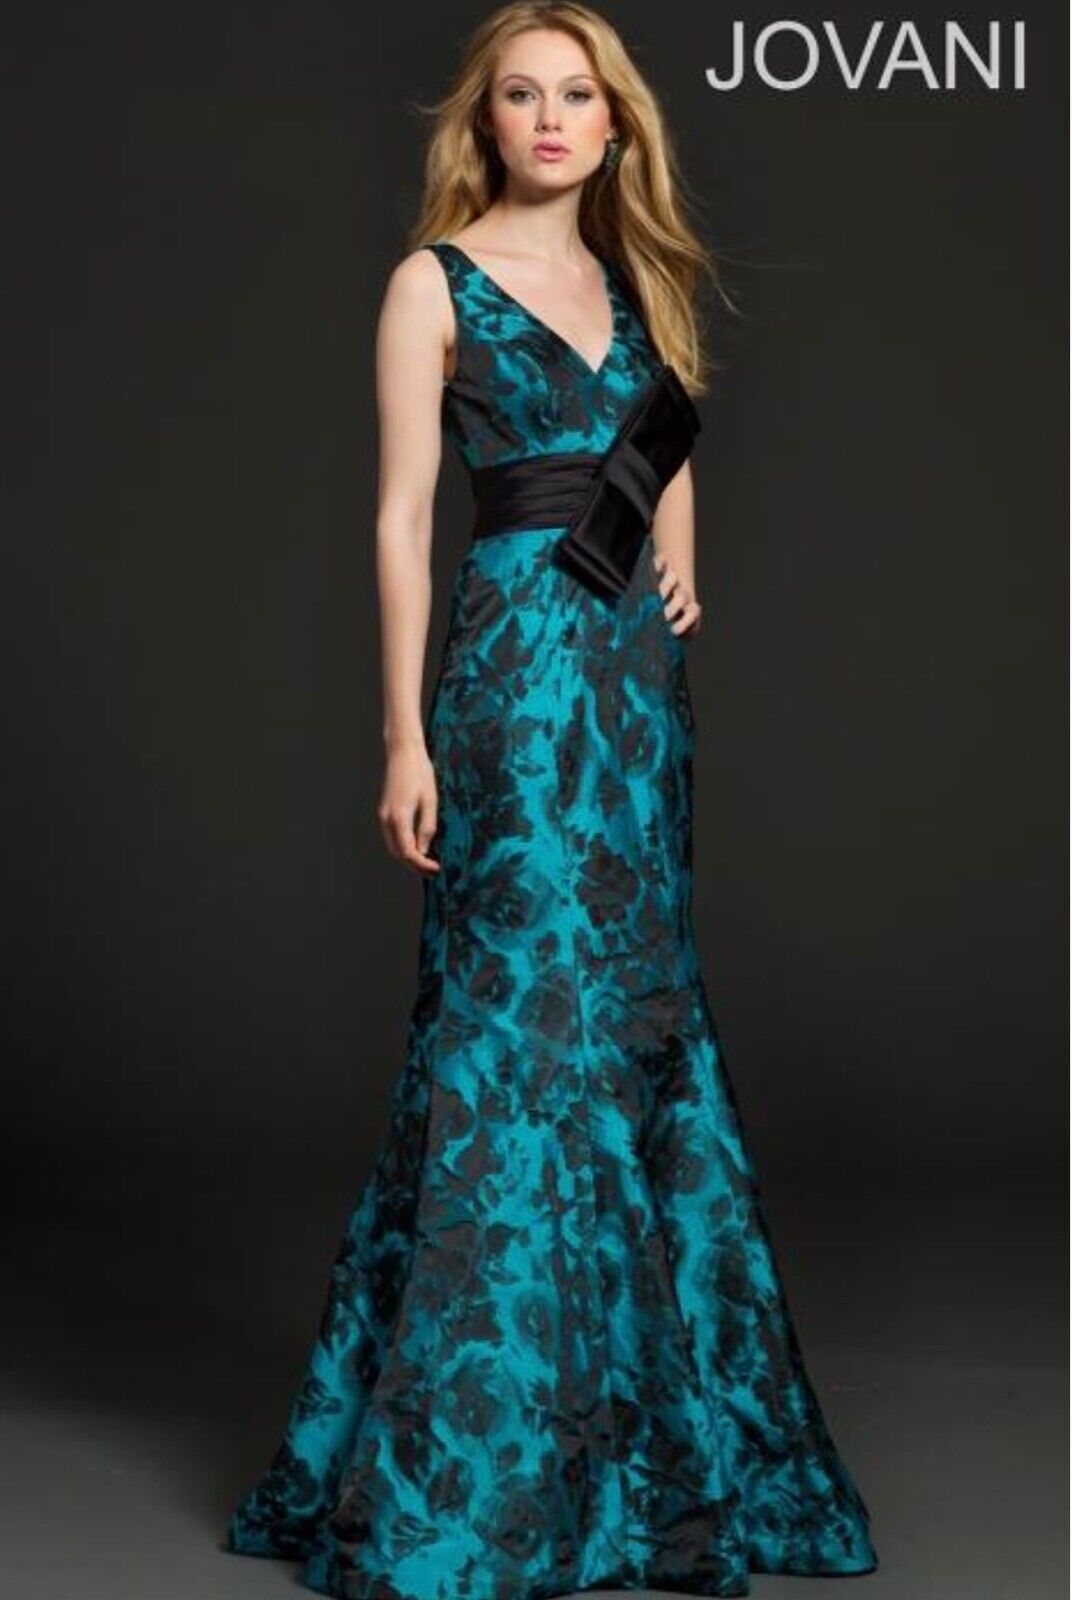 Jovani black/teal evening MOB gown style 99316 size 14